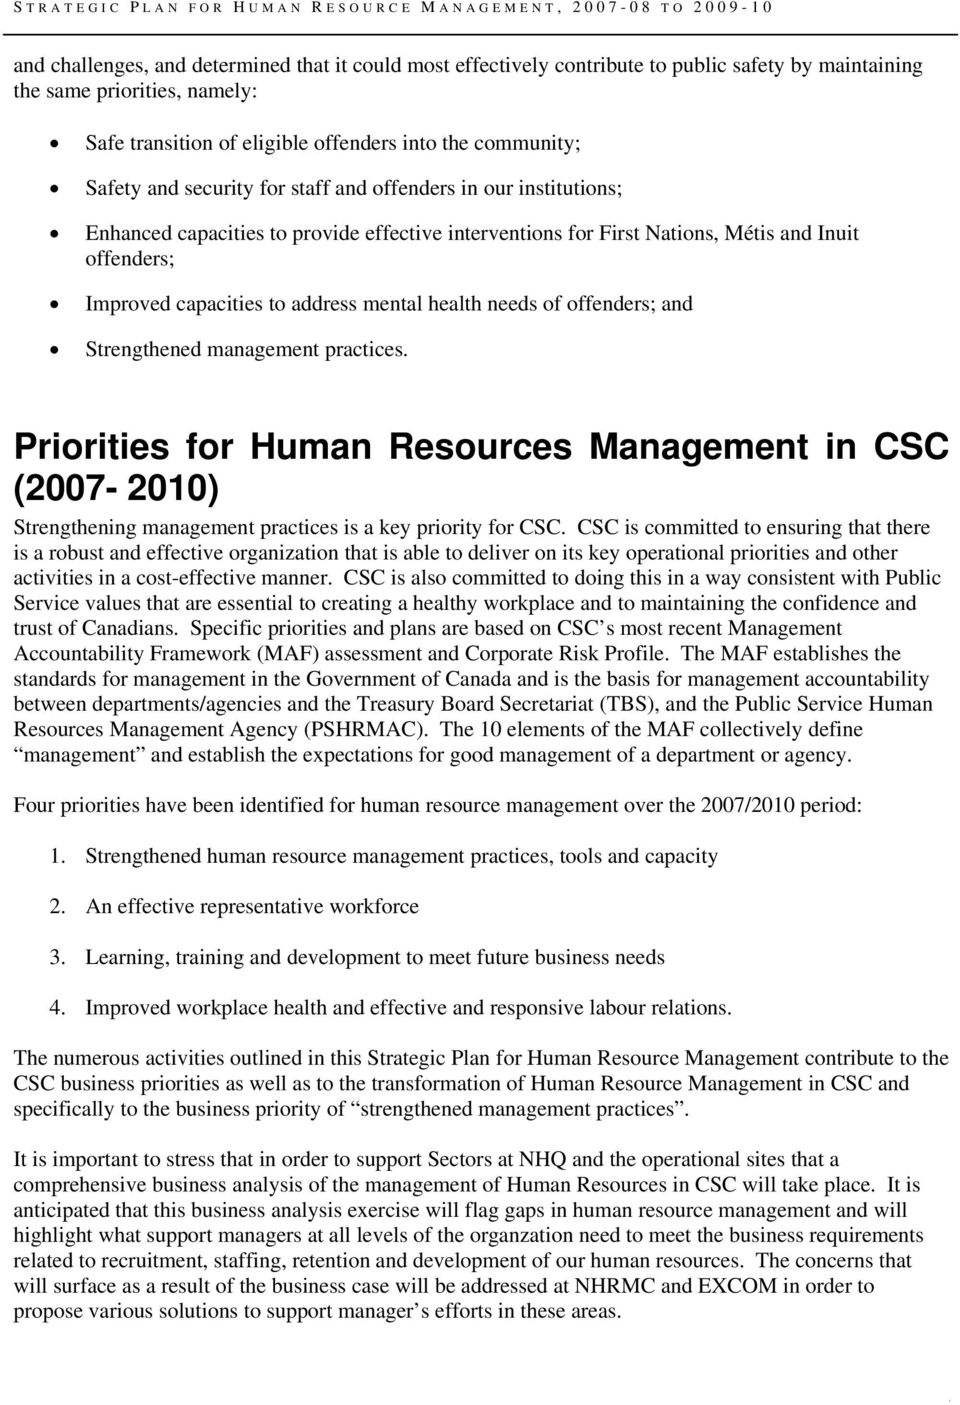 ffenders; and Strengthened management practices. Pririties fr Human Resurces Management in CSC (2007-2010) Strengthening management practices is a key pririty fr CSC.